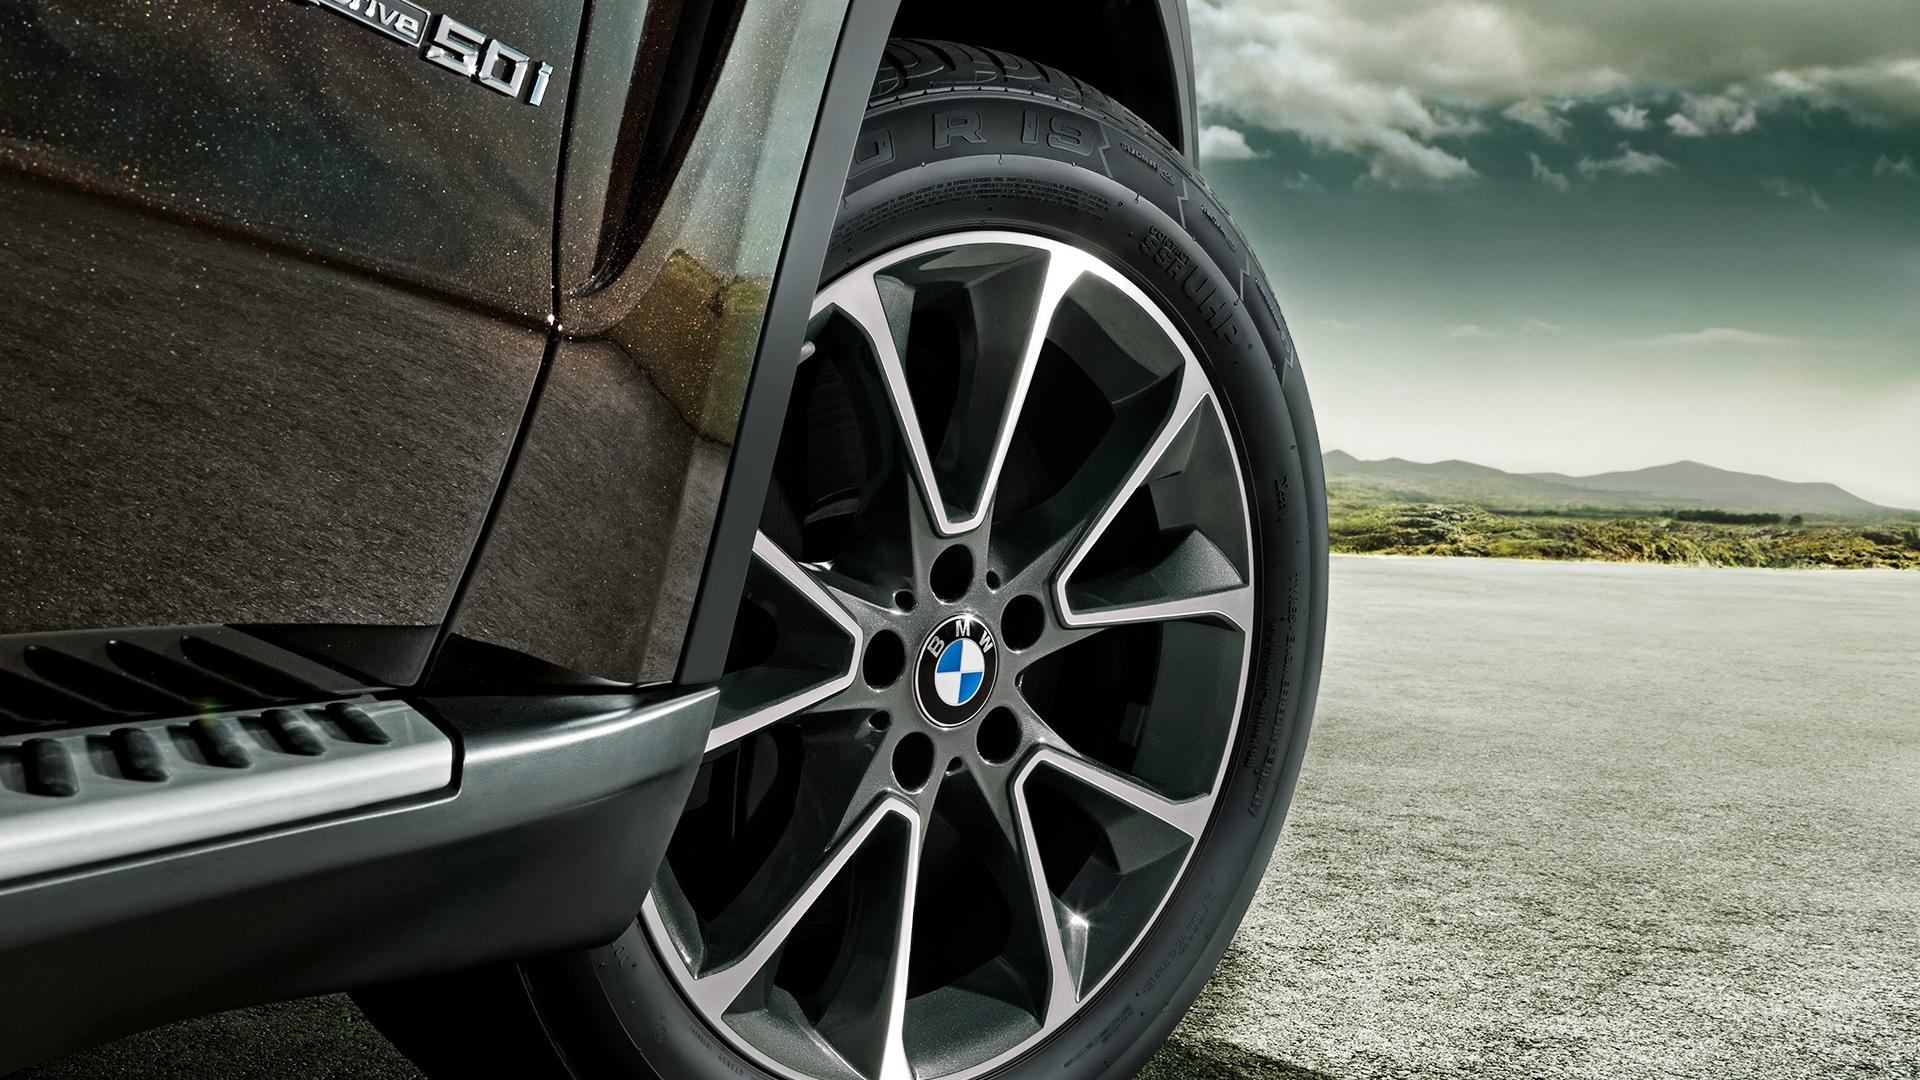 BMW X5 Novelty Wheel Tyre Close Up Wallpapers